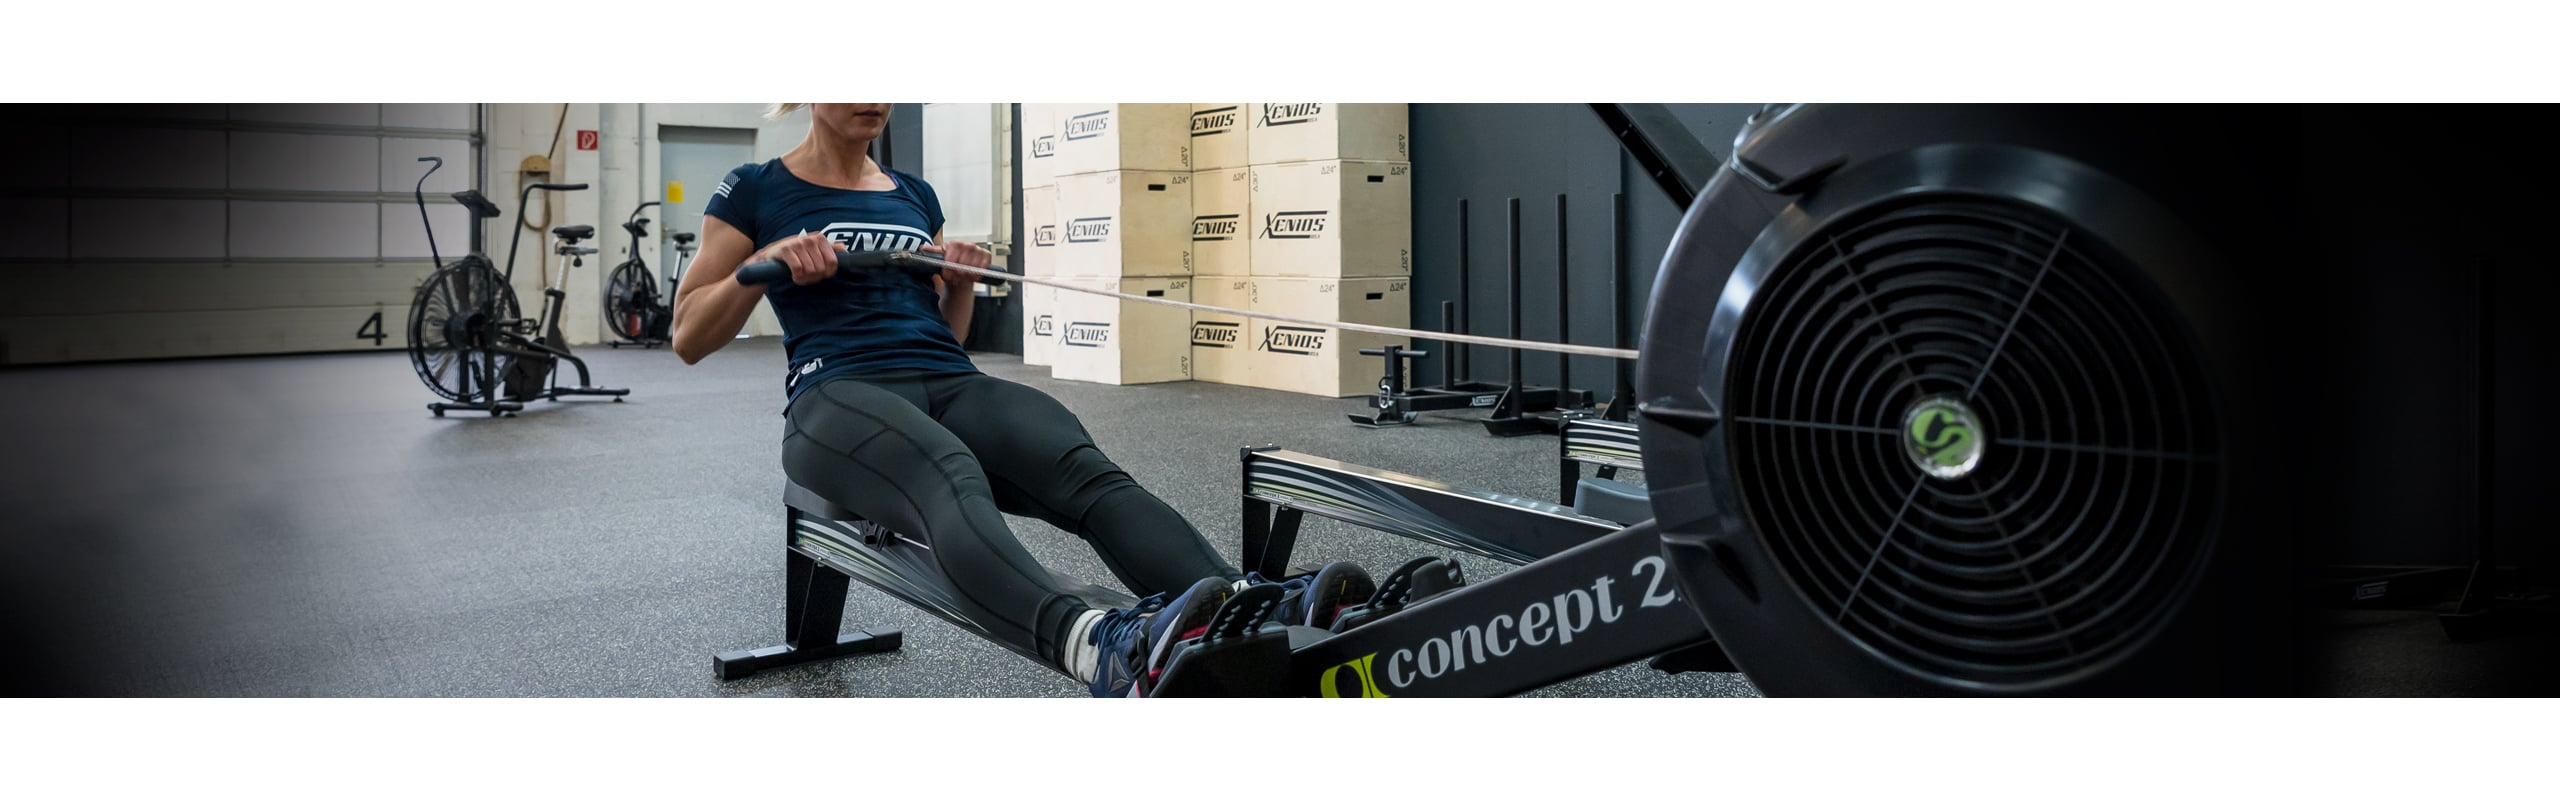 RowErg Concept2 Mod D with PM5 monitor